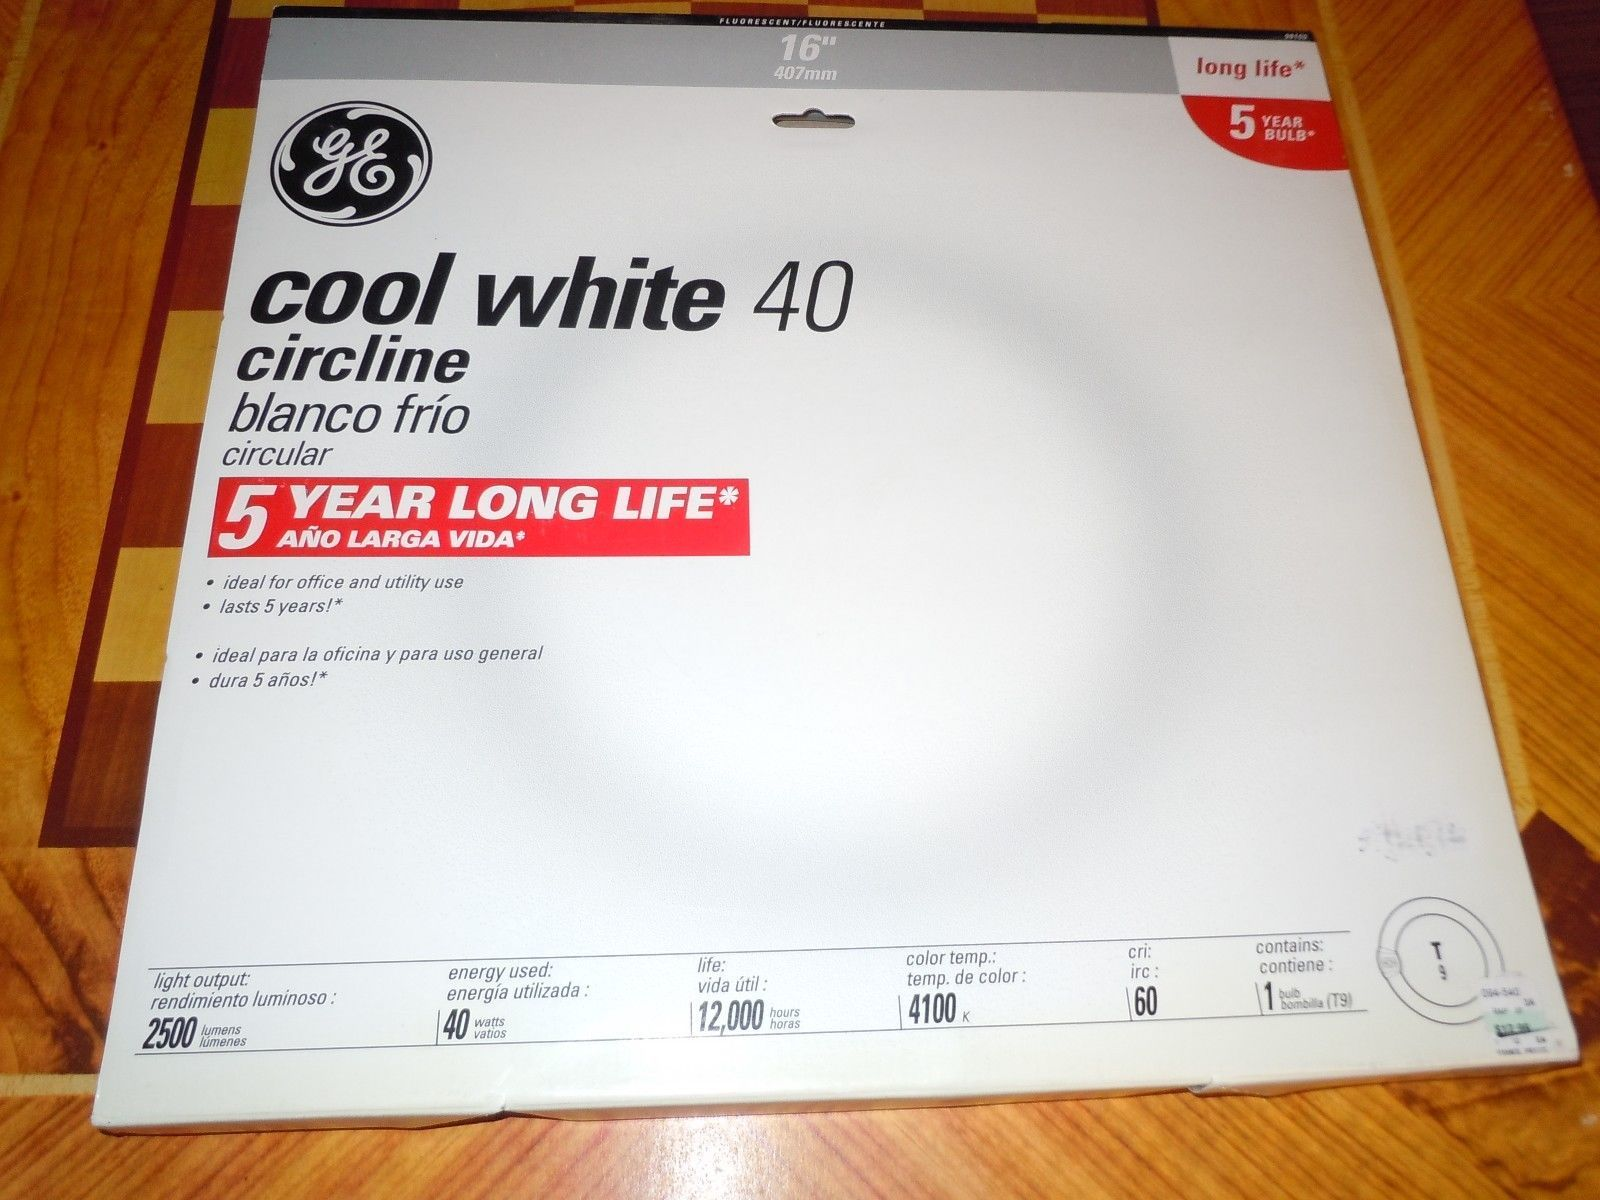 GE Circline Cool White Fluorescent Lamp Bulb 4 Pin 40W General Electric image 3